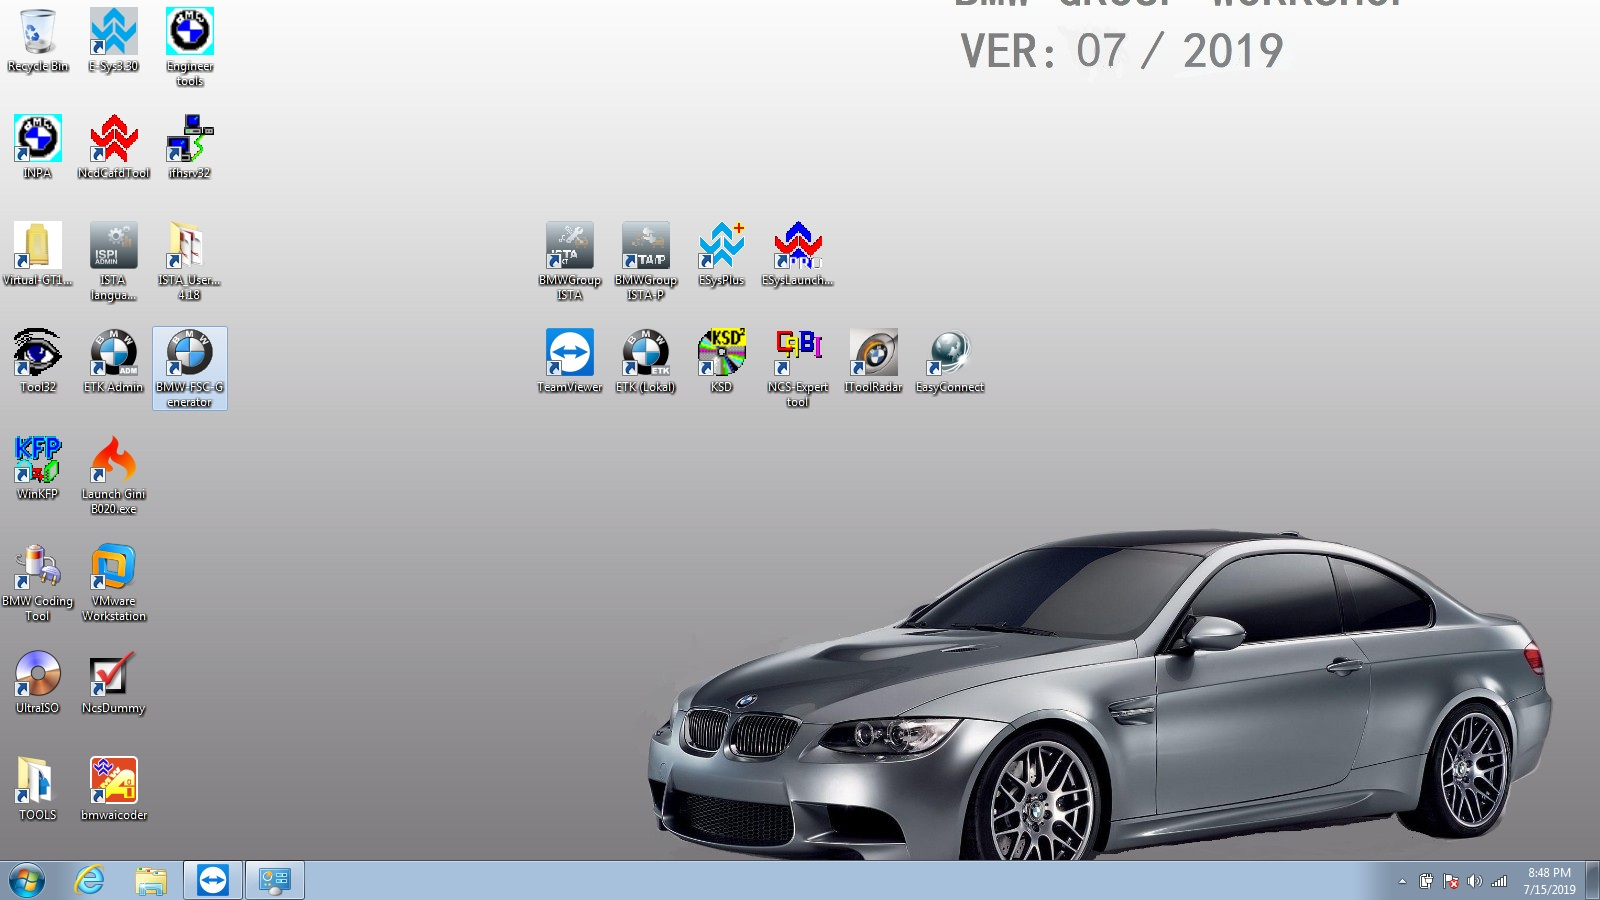 US$799 00 - BMW ICOM NEXT A + B + C with 2019 07V Software Plus EVG7